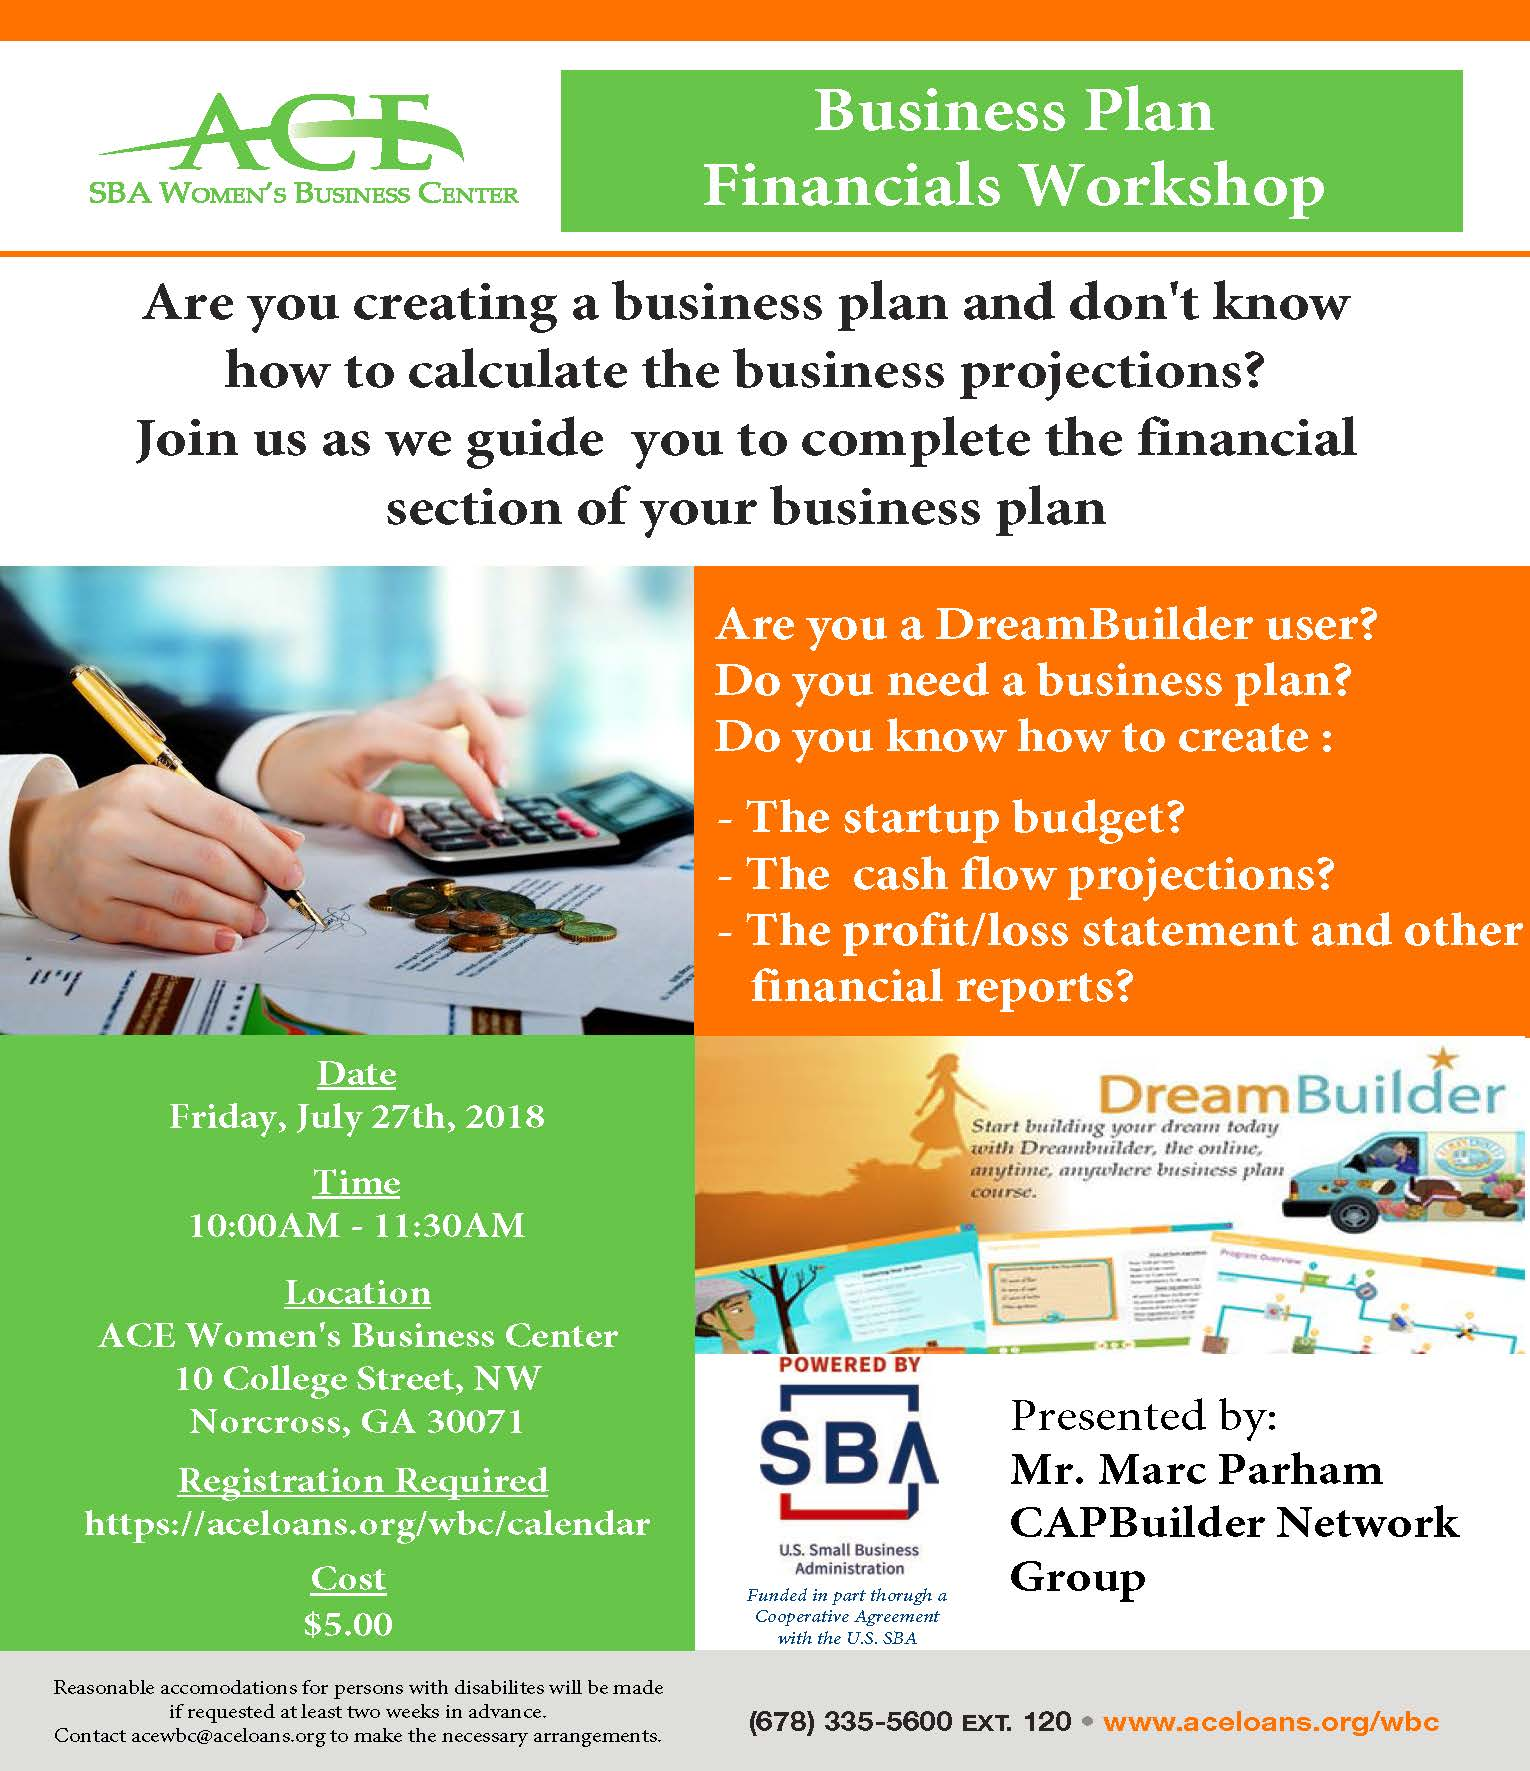 business plan financial access to capital workshop access to